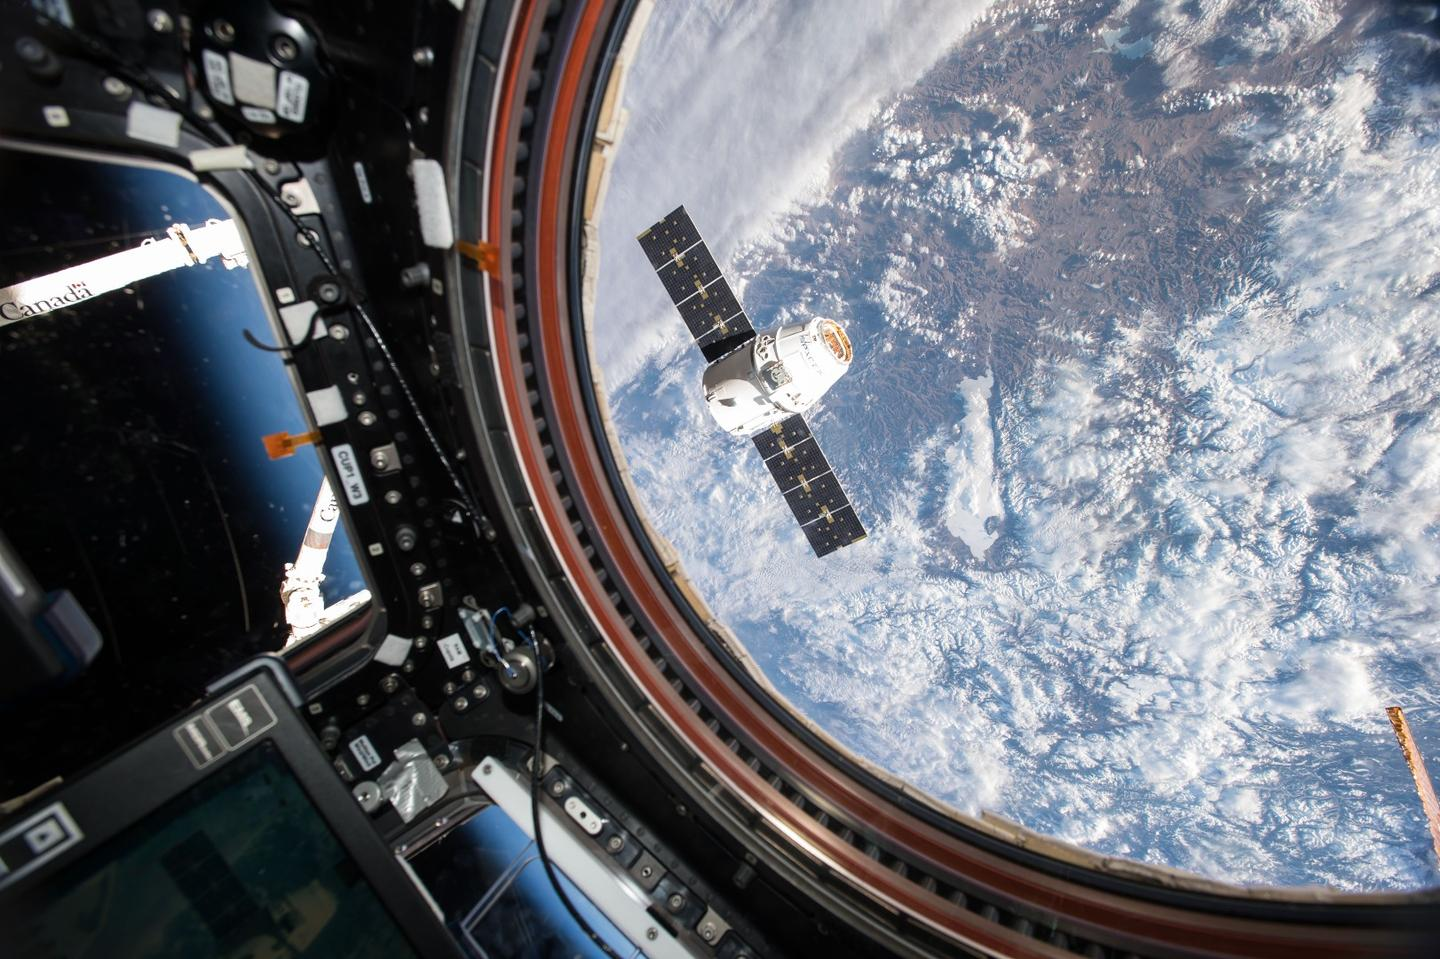 The SpaceX Dragon spacecraft as seen from the ISS on an earlier mission